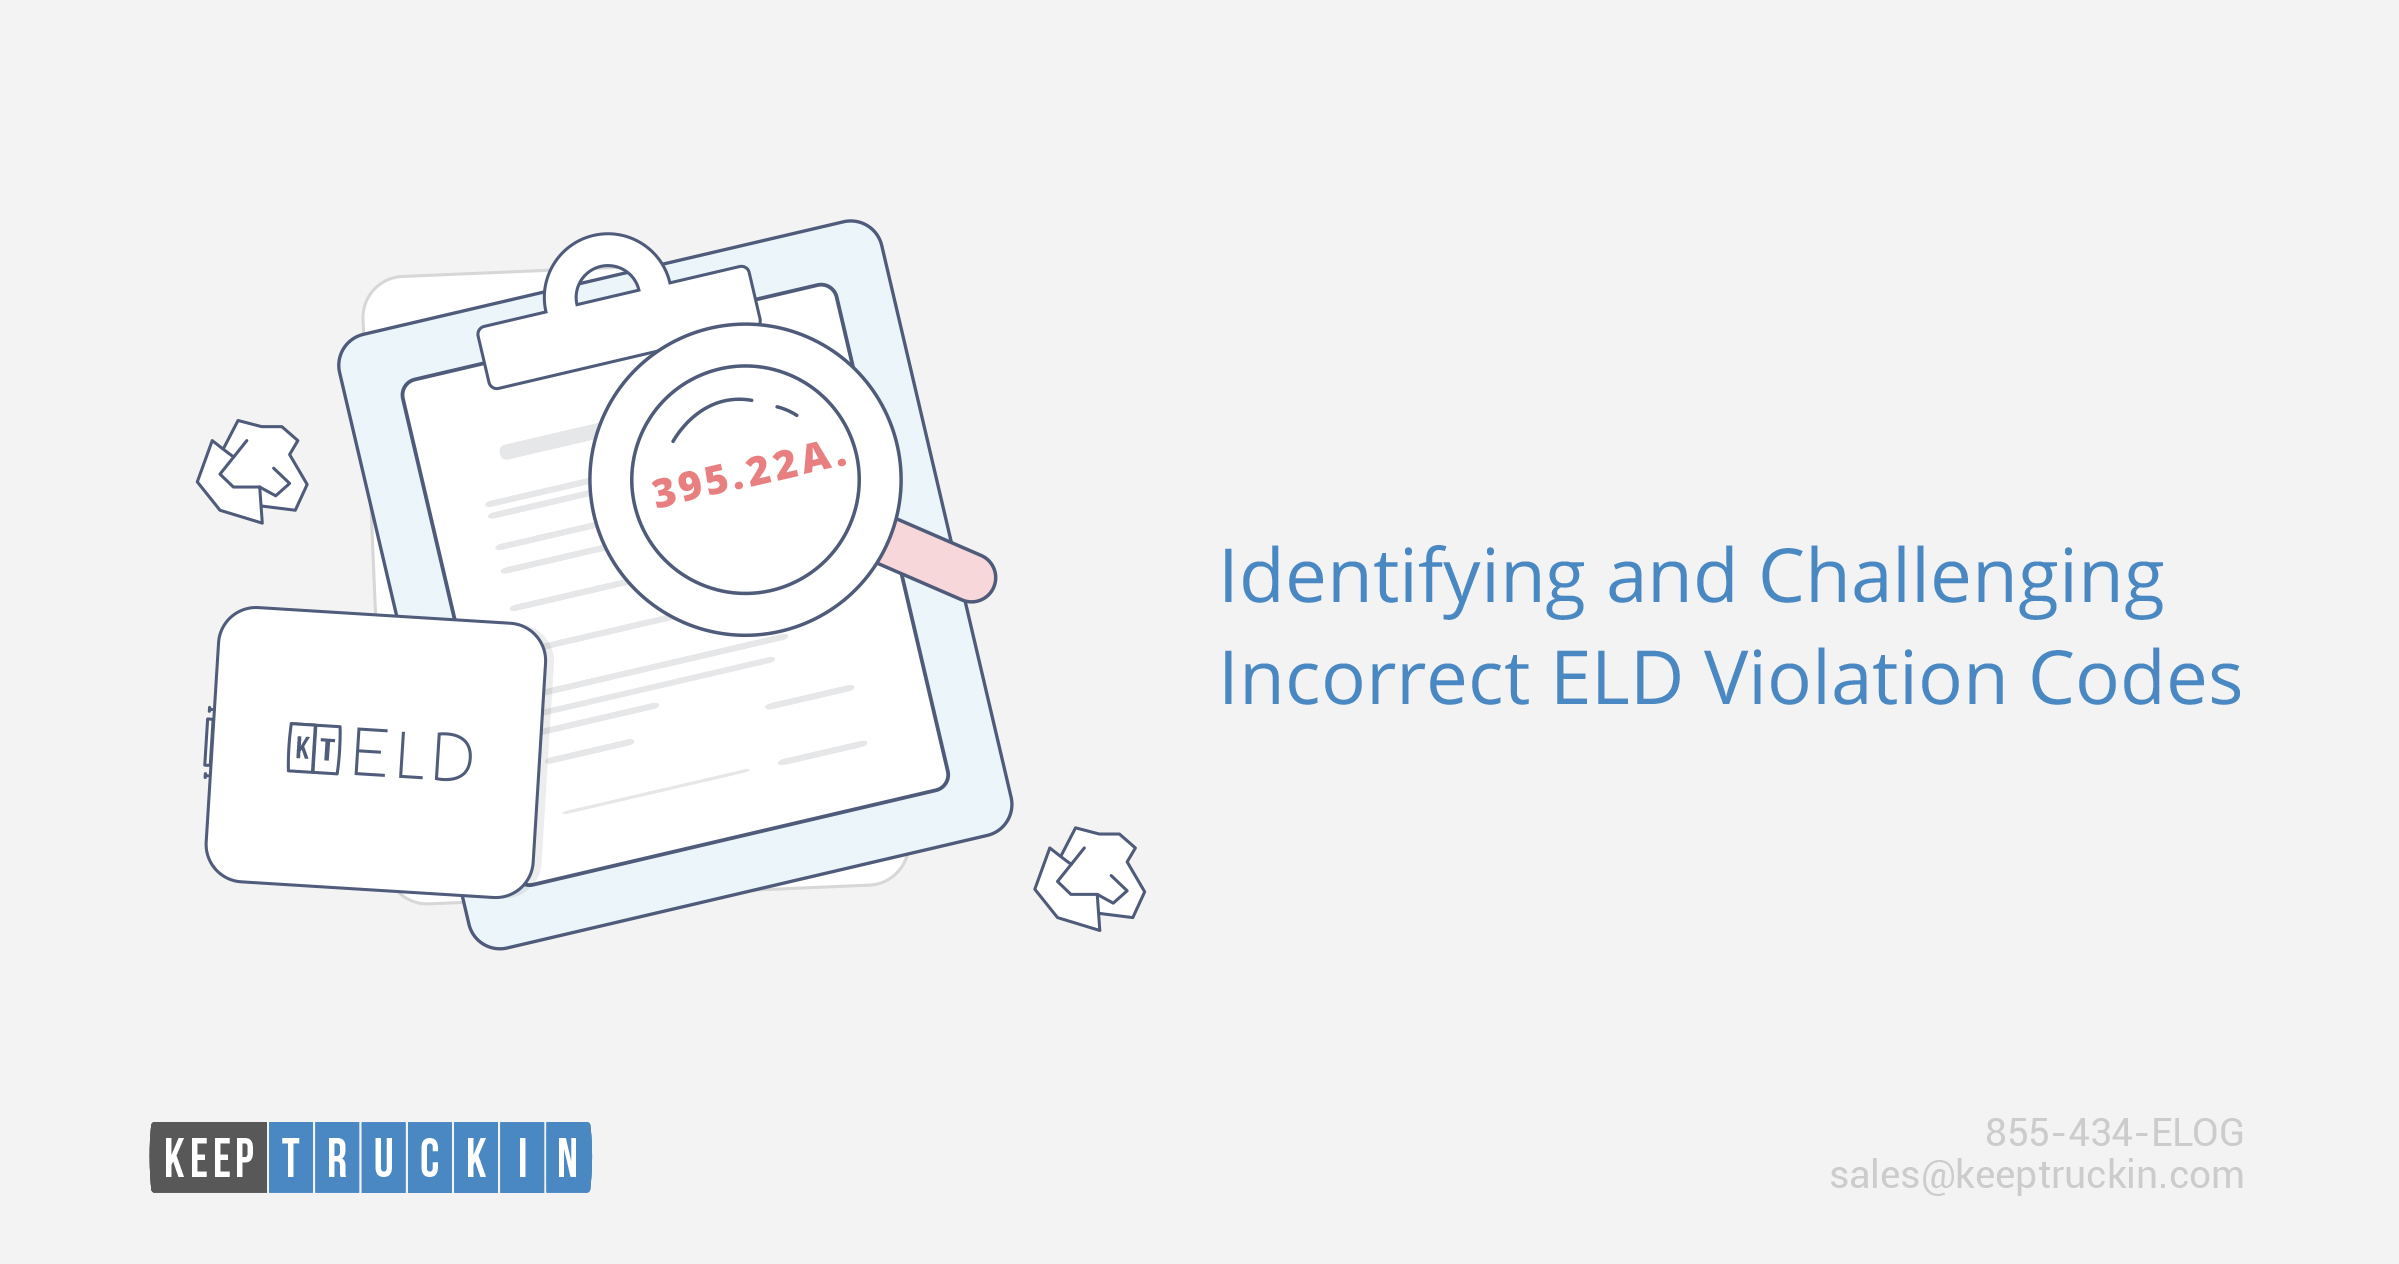 Identifying and challenging incorrect ELD violation codes